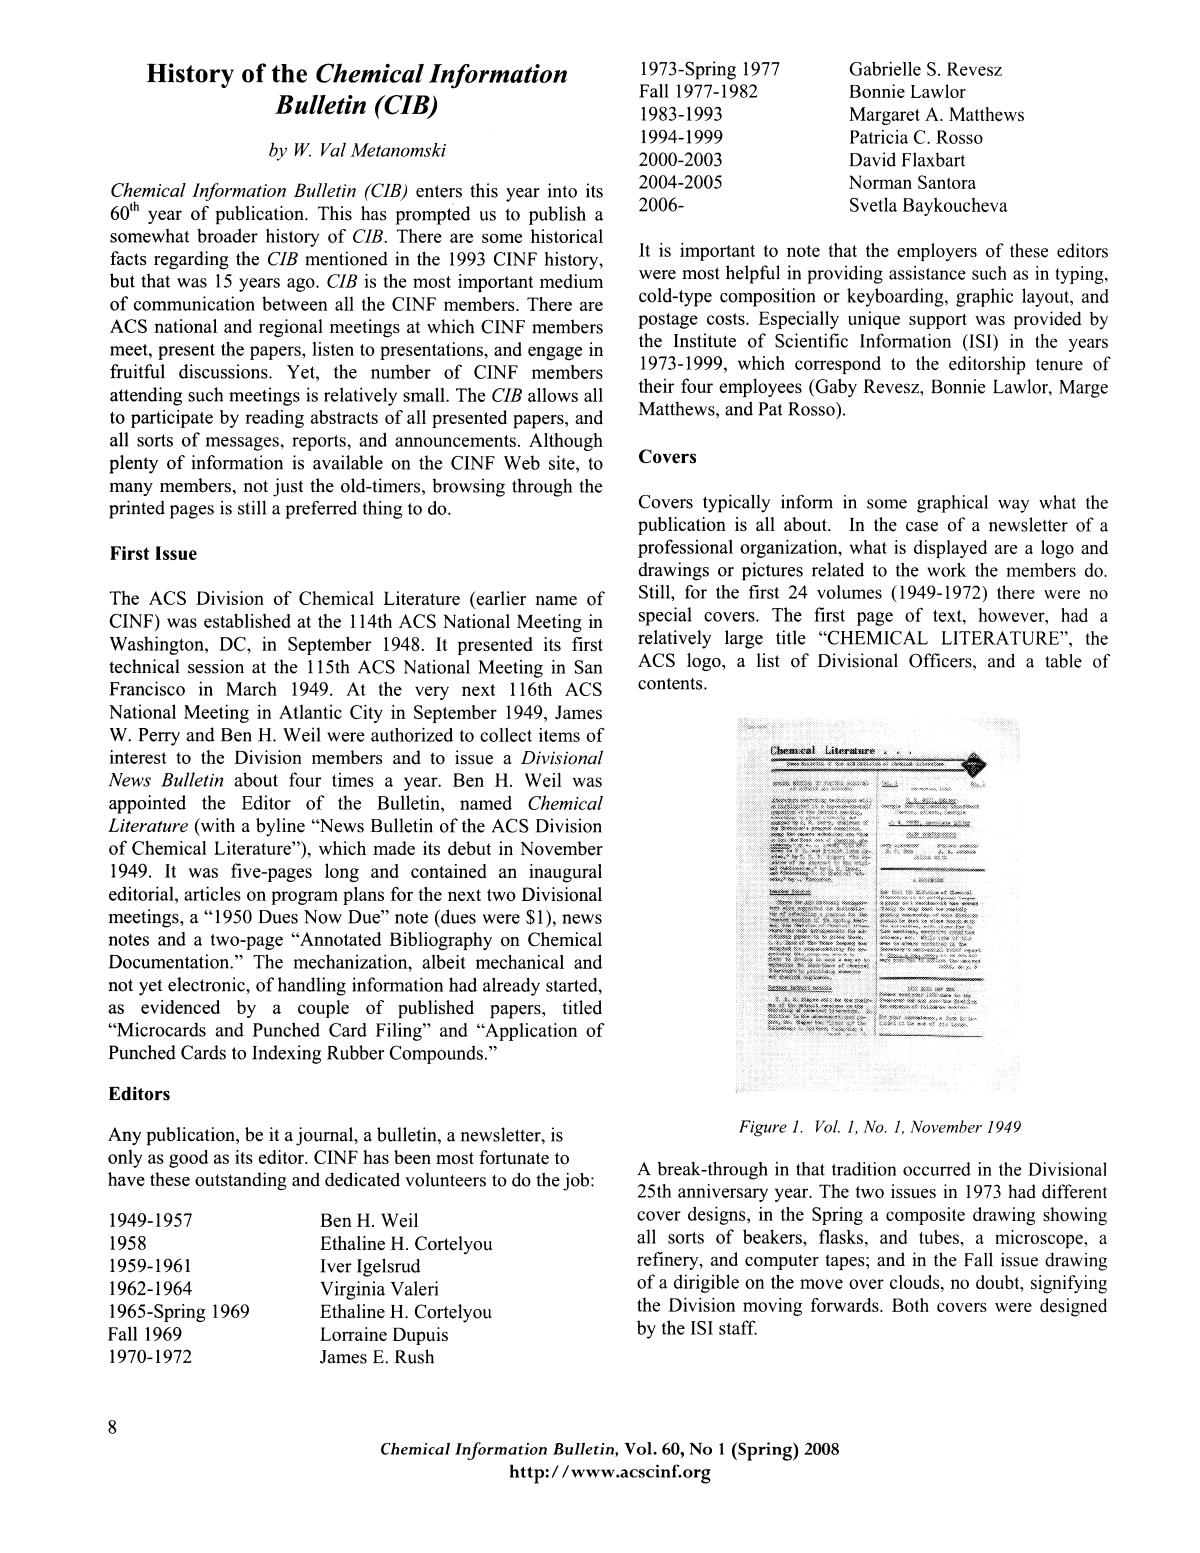 Chemical Information Bulletin, Volume 60, Number 1, Spring 2008                                                                                                      8